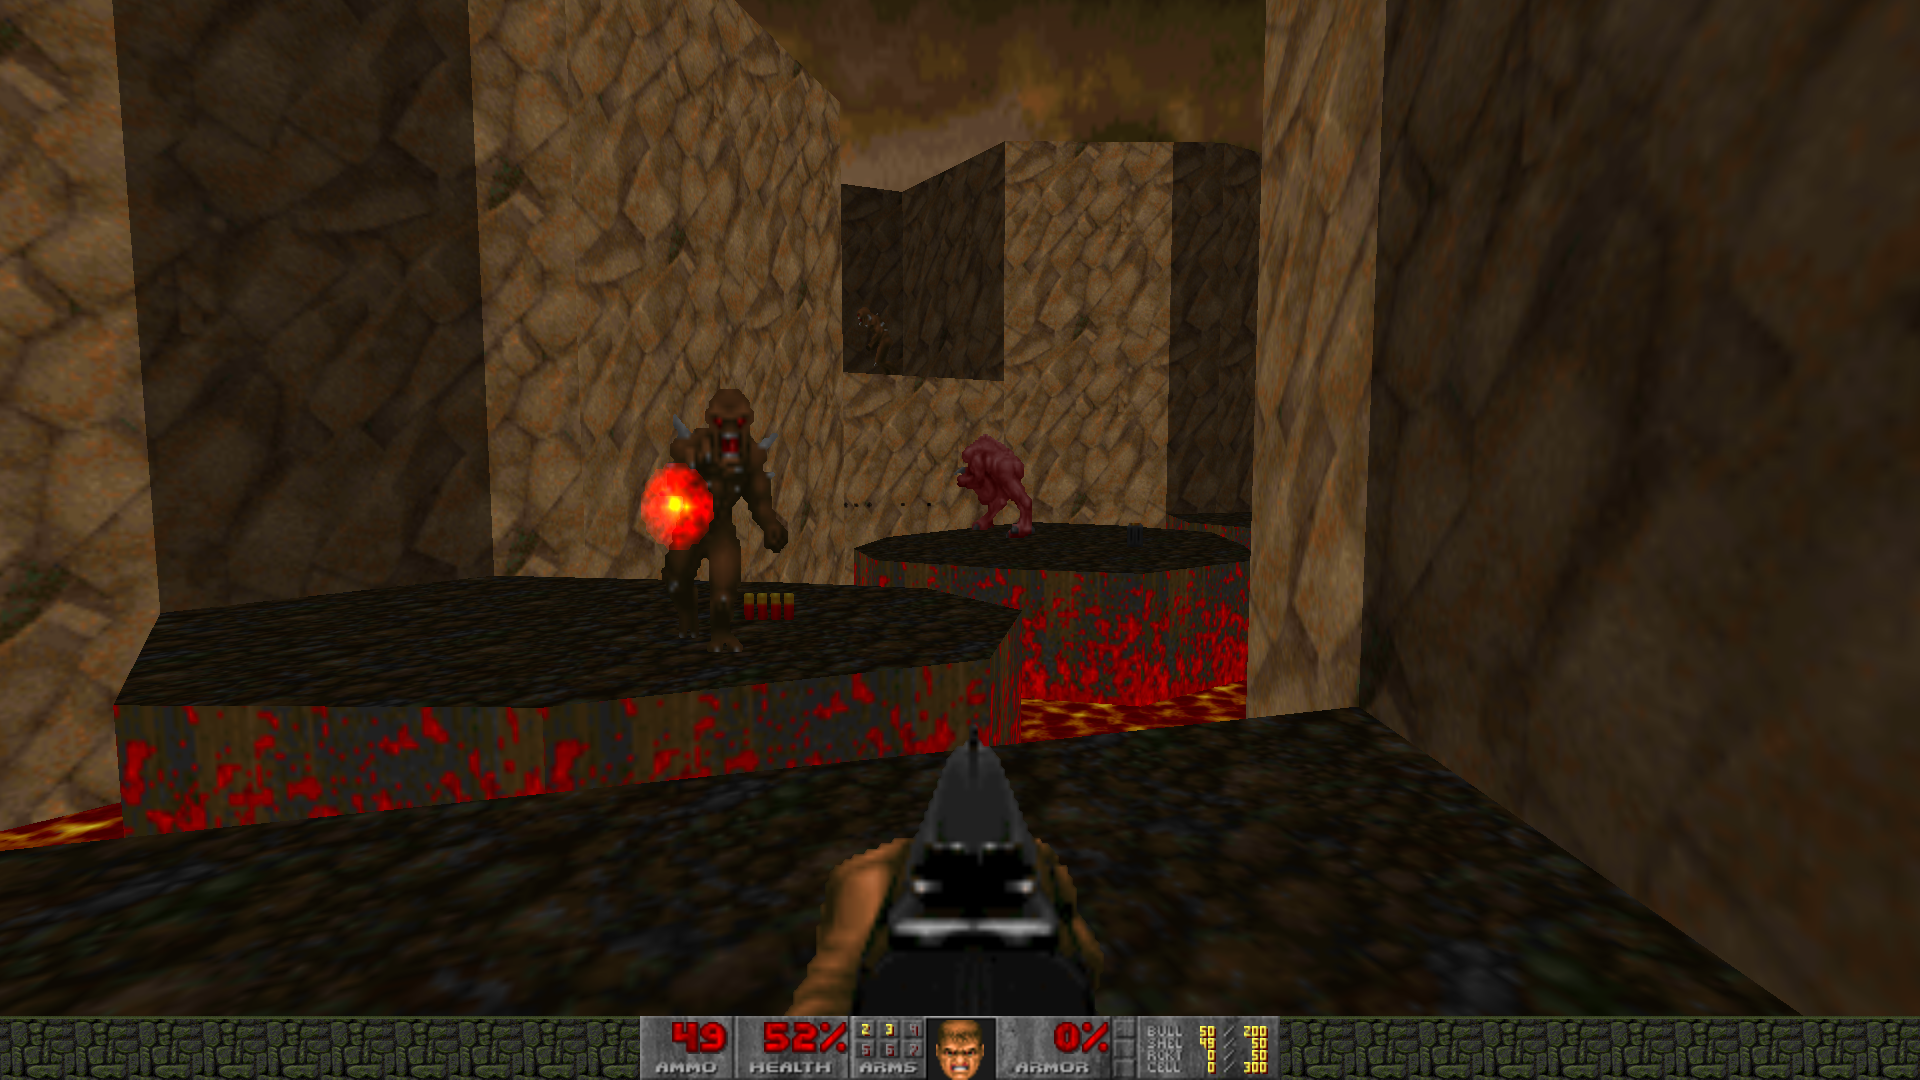 2010508884_Entryway-DOOM2_HellonEarth13_04_202002_08_45.png.8ff237e5512dced480043bf277912d9a.png